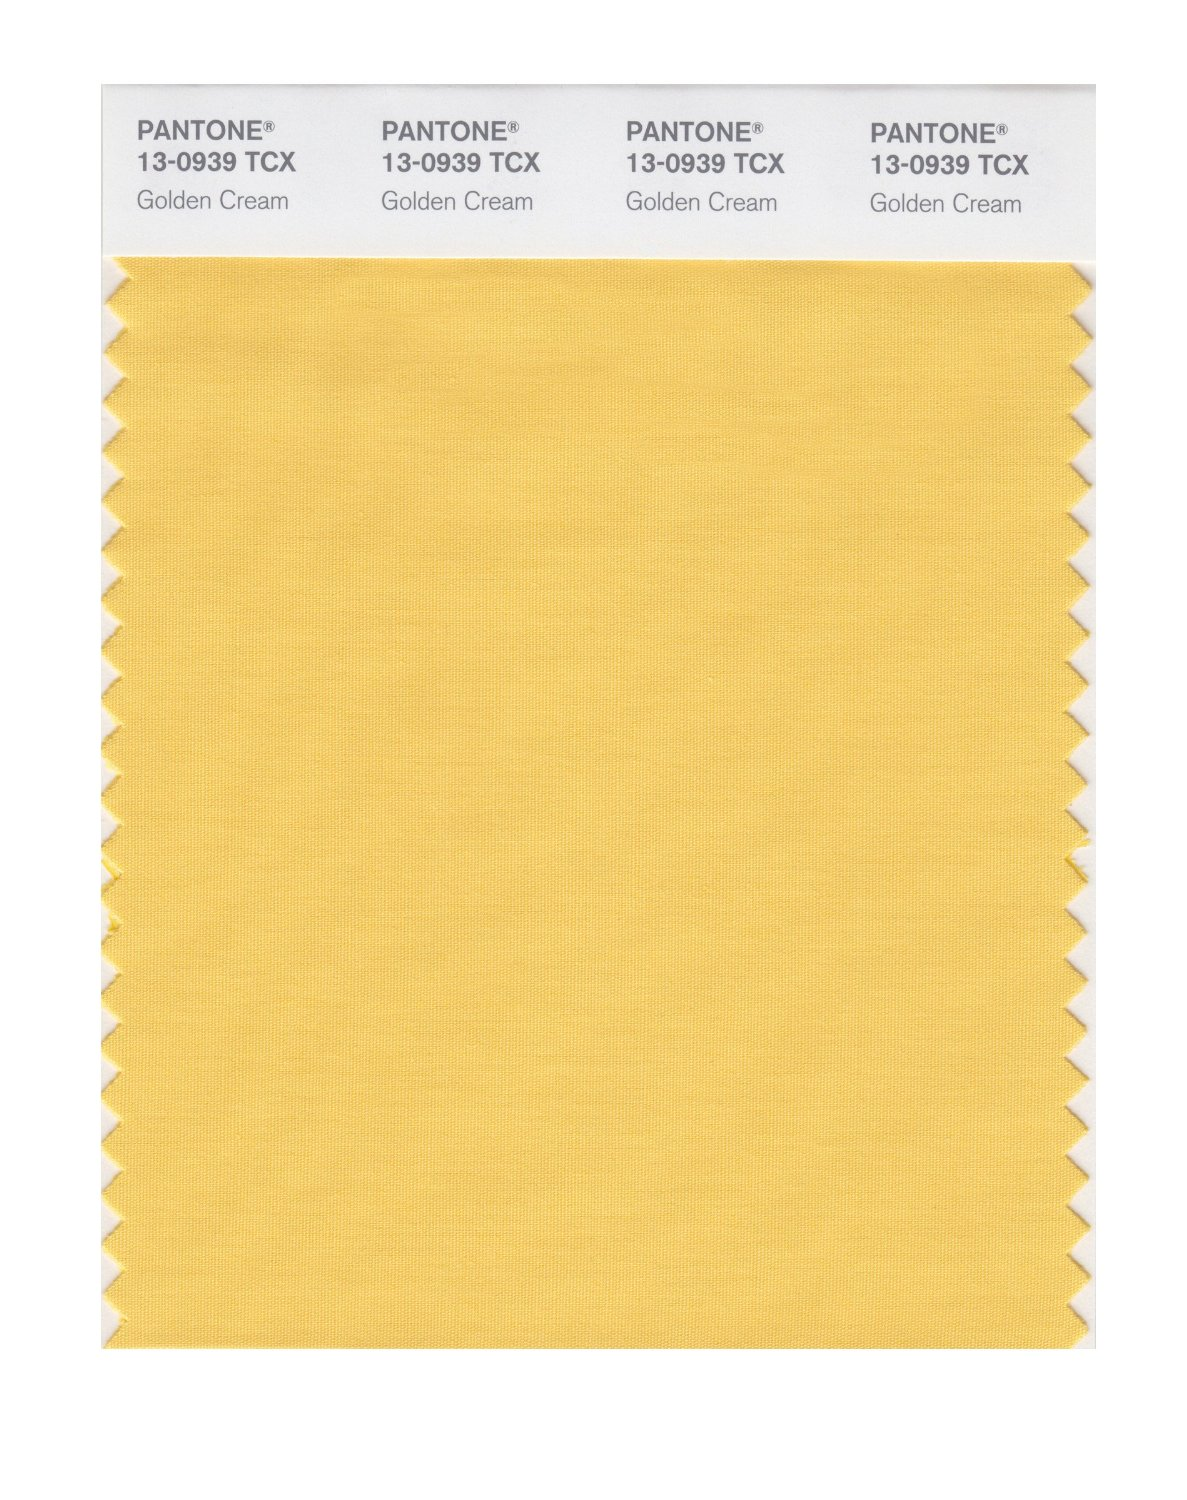 Pantone Smart Swatch 13-0939 Golden Cream